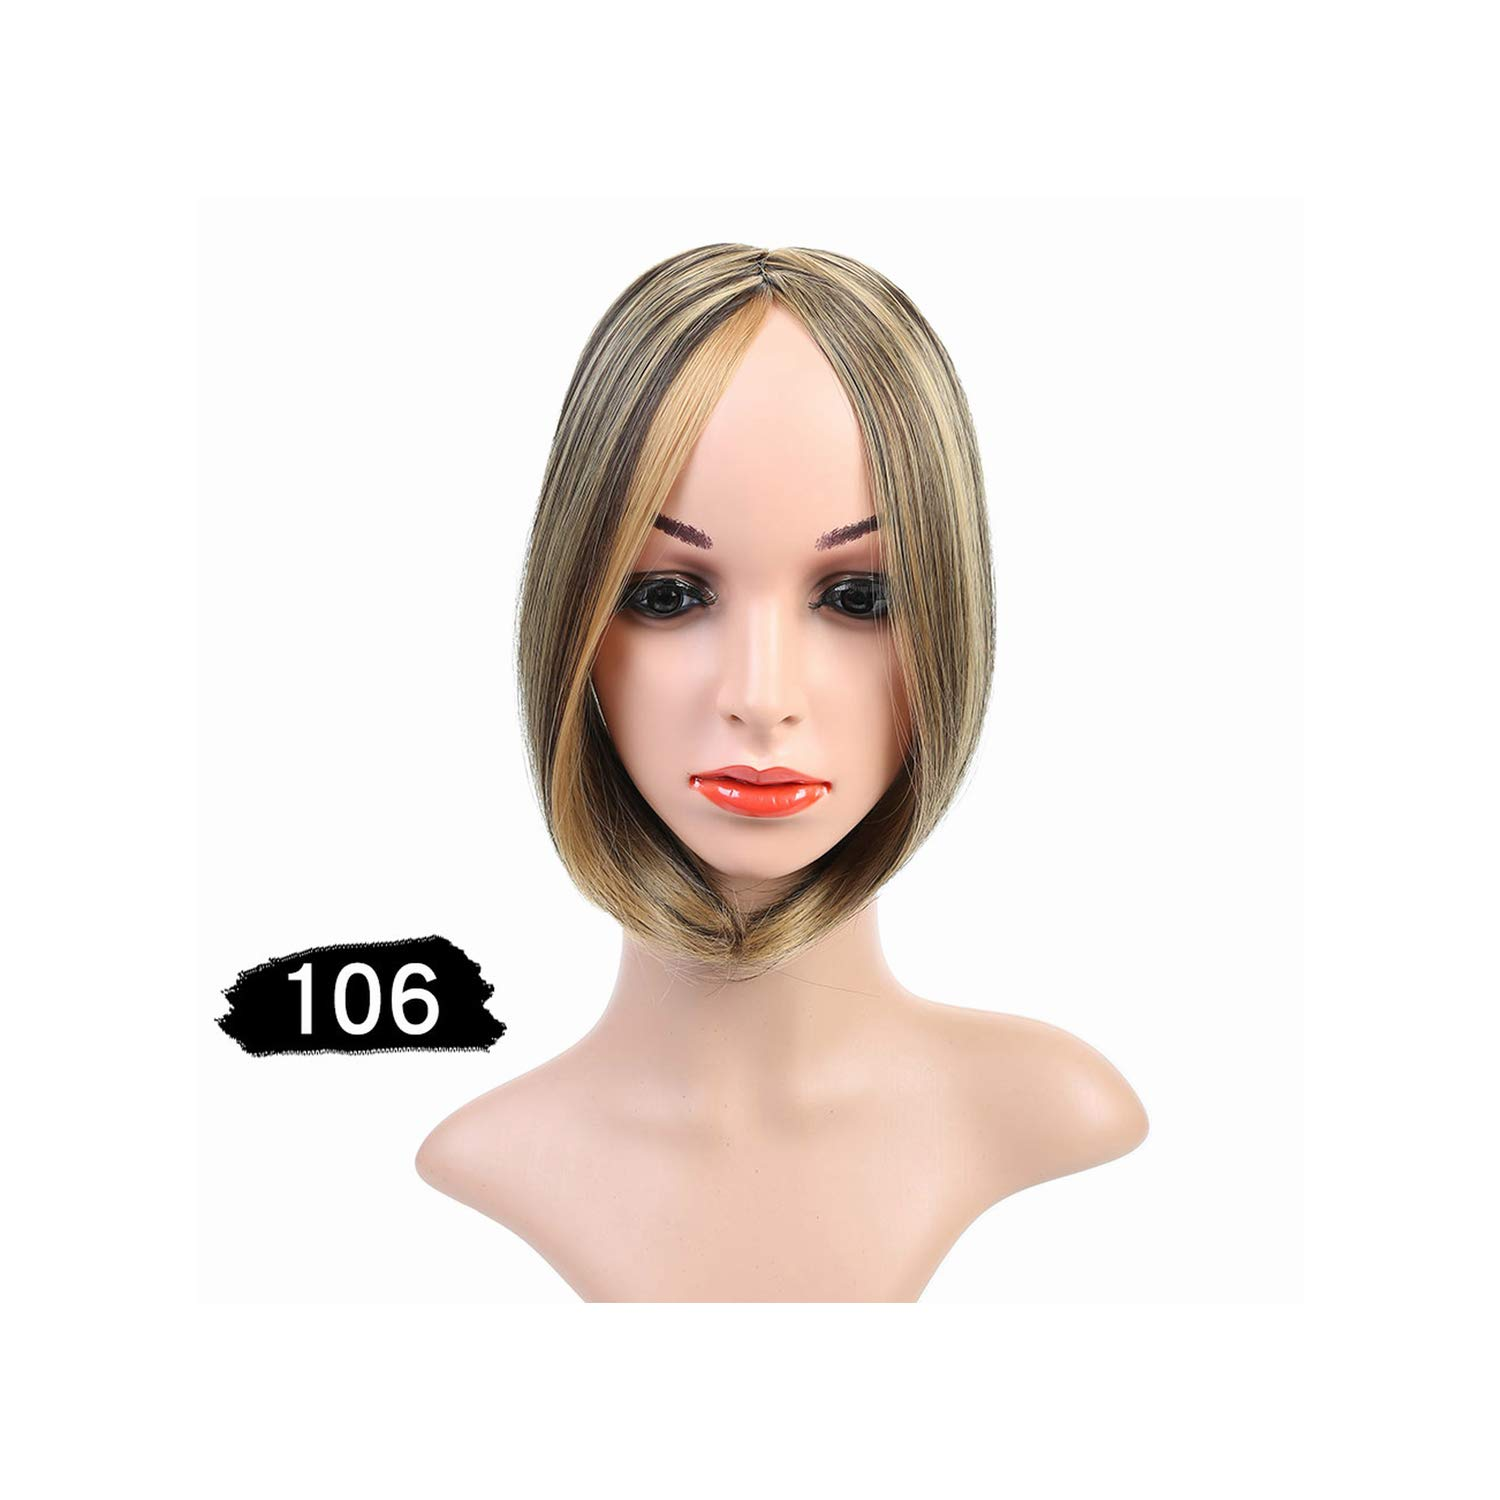 Short Inclined In Side Bangs In Front Hair Bang Fringe Hair Extension Piece Headwea,106,10Inches